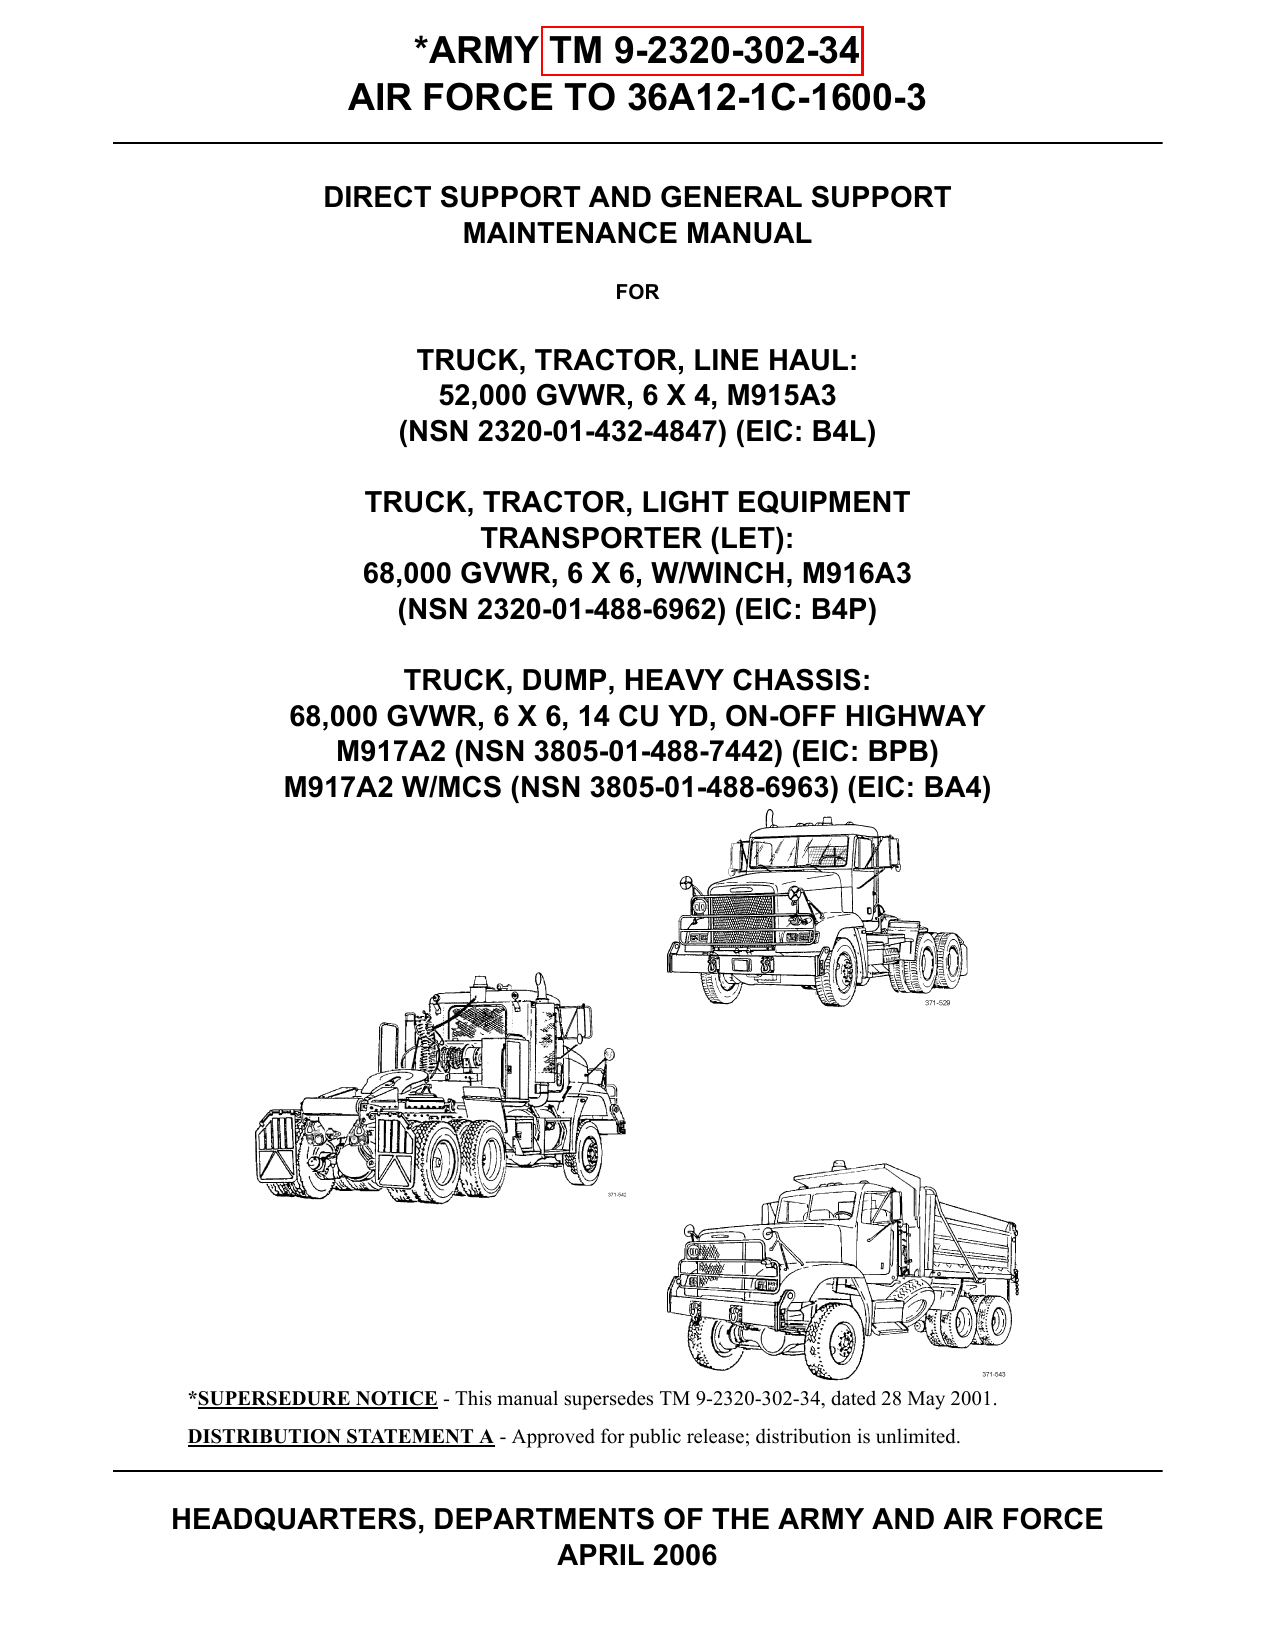 hight resolution of  freightliner allison transmission wiring schematic on asaalt weapon systems handbook 2016 on army tm 9 2320 302 34 air force to 36a12 1c